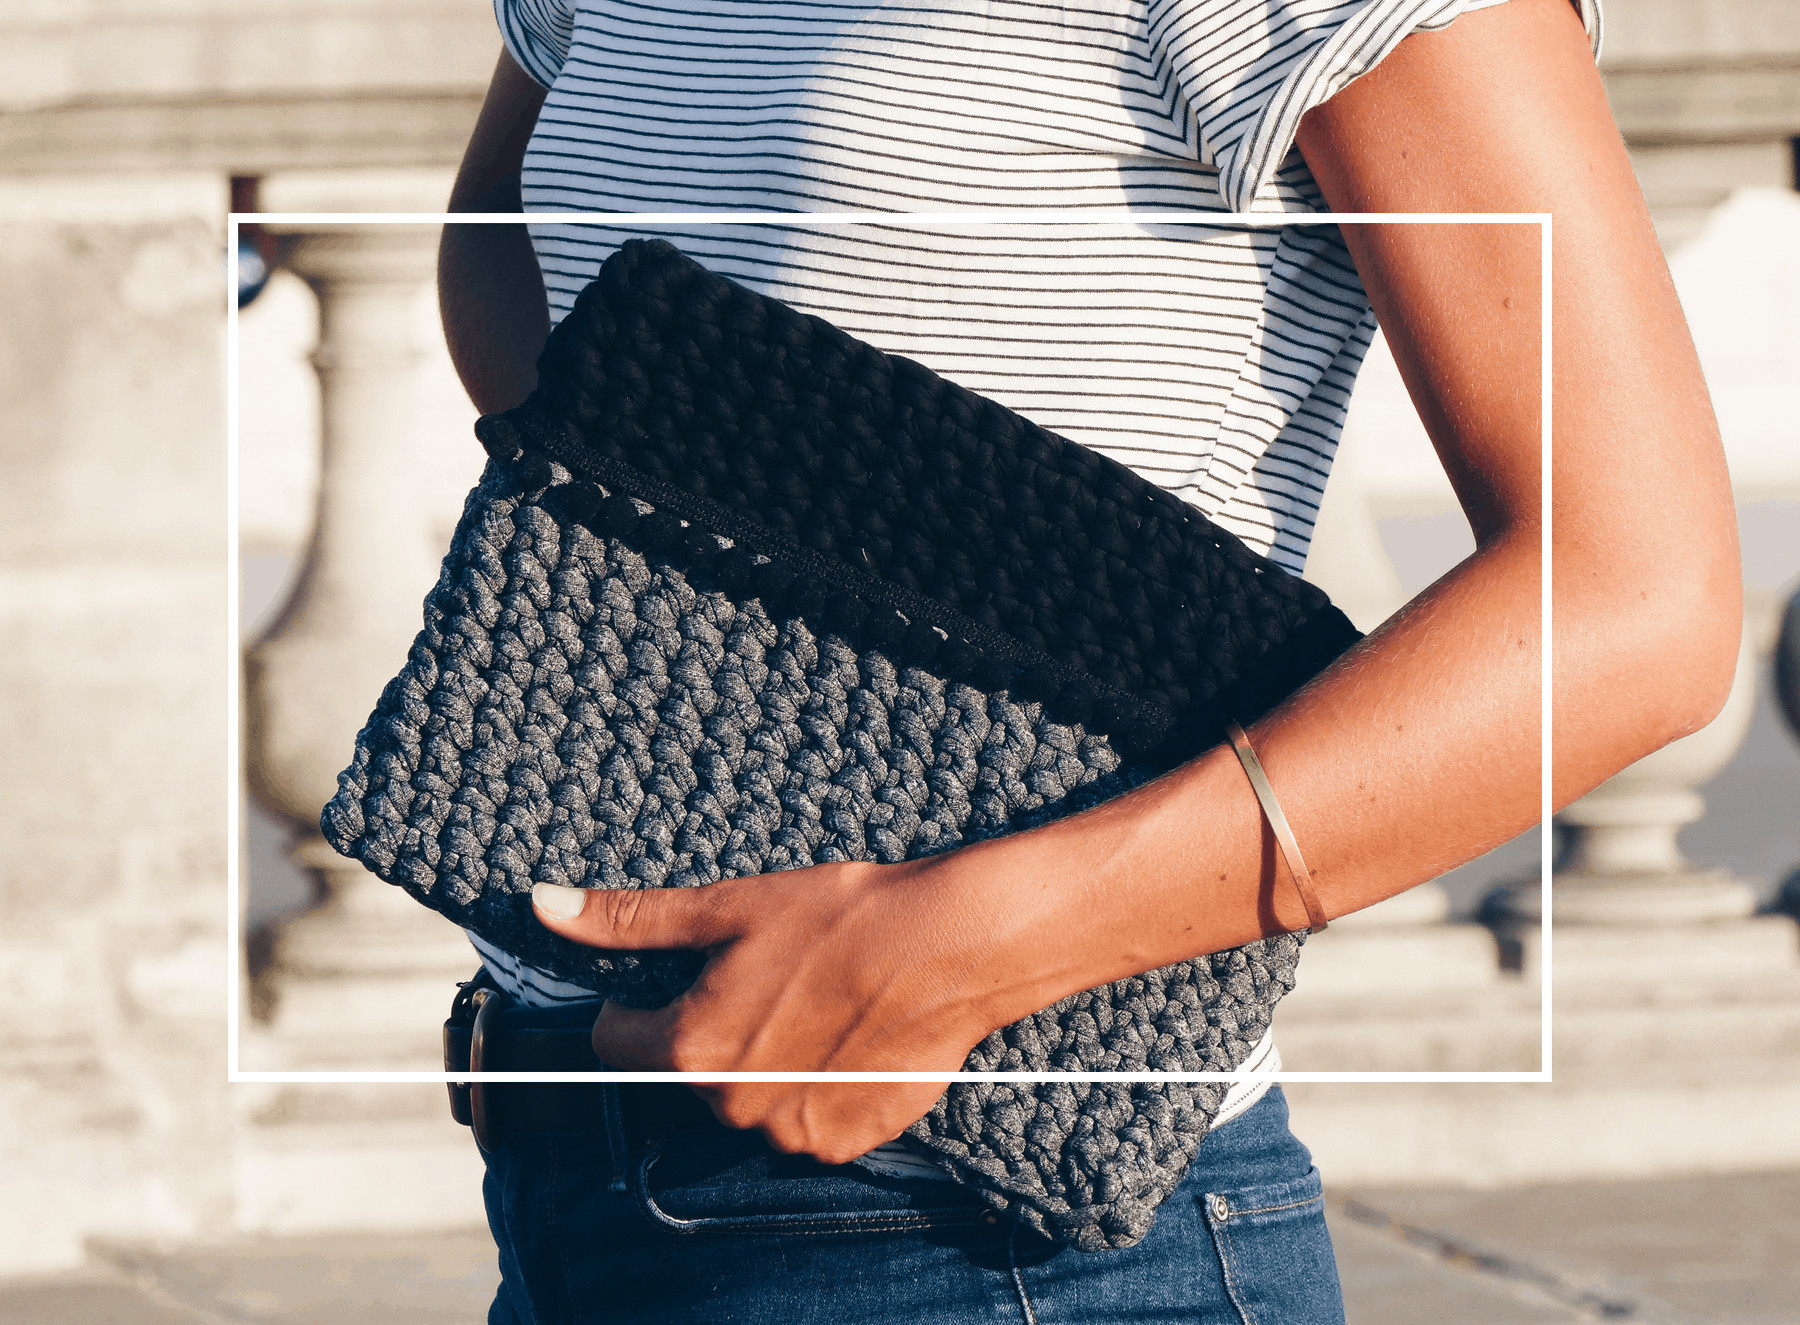 French Statement Accessories La French Pique OuiPlease OuiBlog